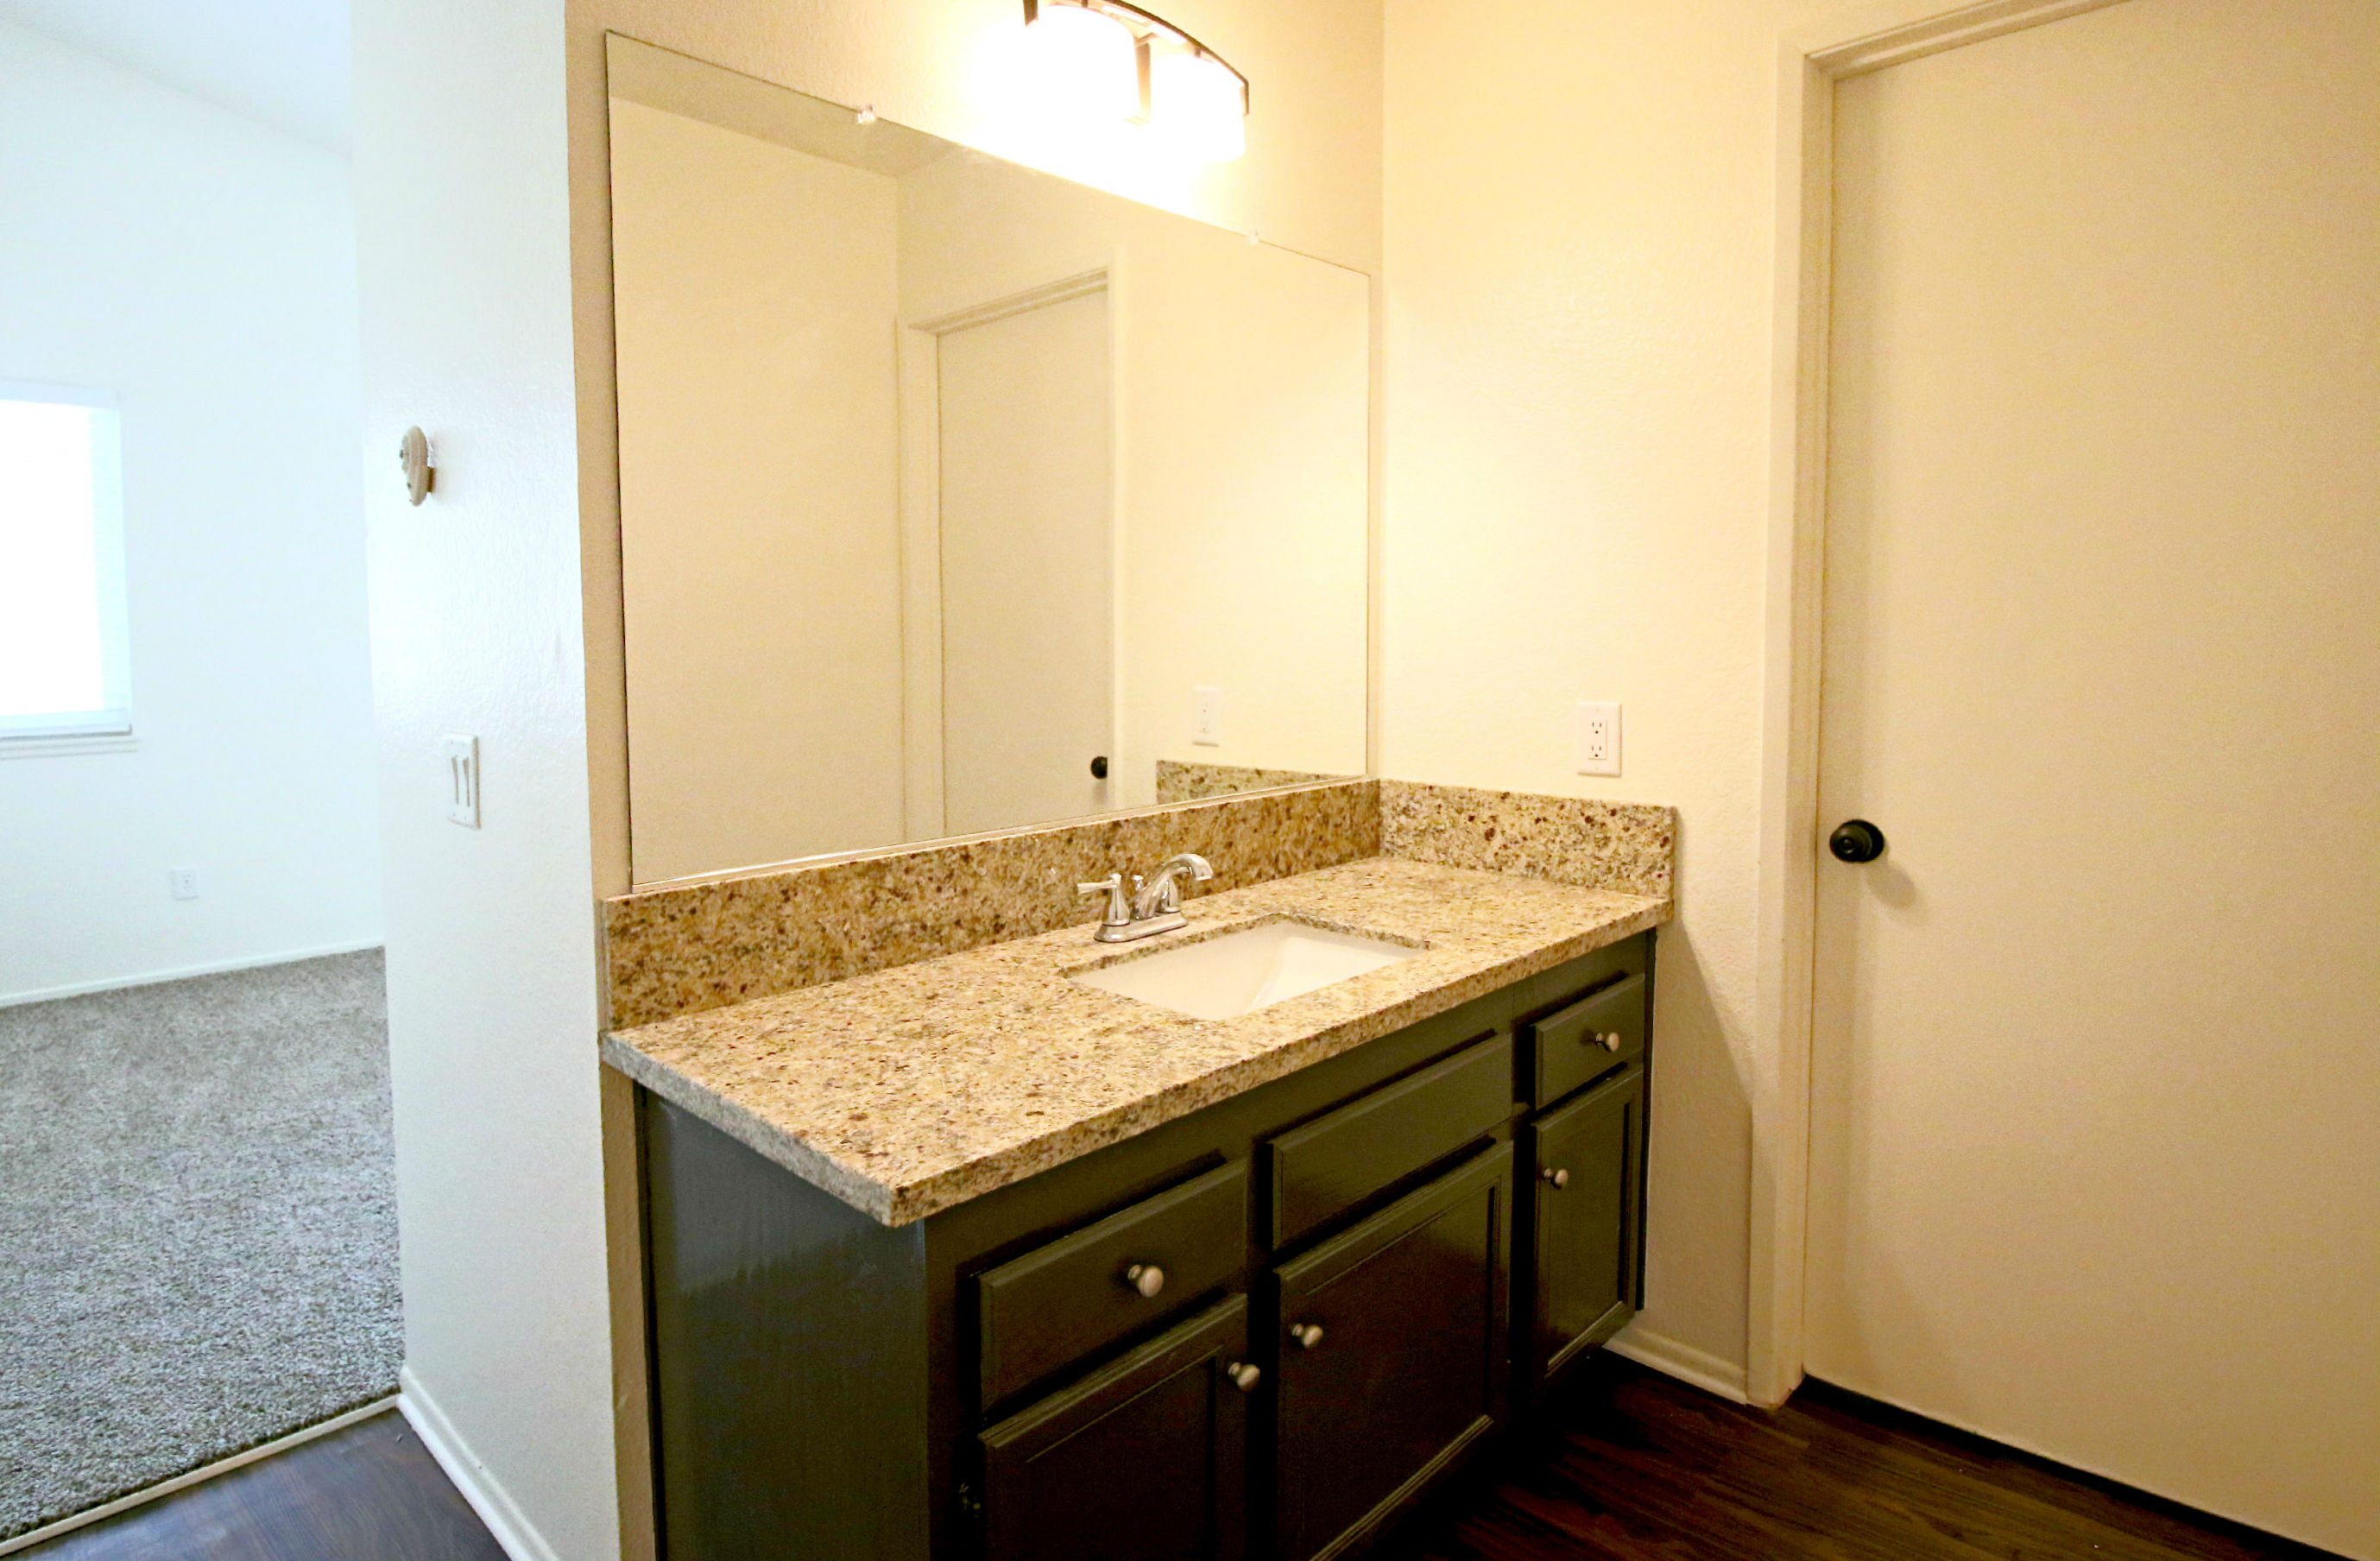 Remodeled Master Suite Bathroom With Granite Counter Top On Brand New  Vanity. New Laminate Flooring